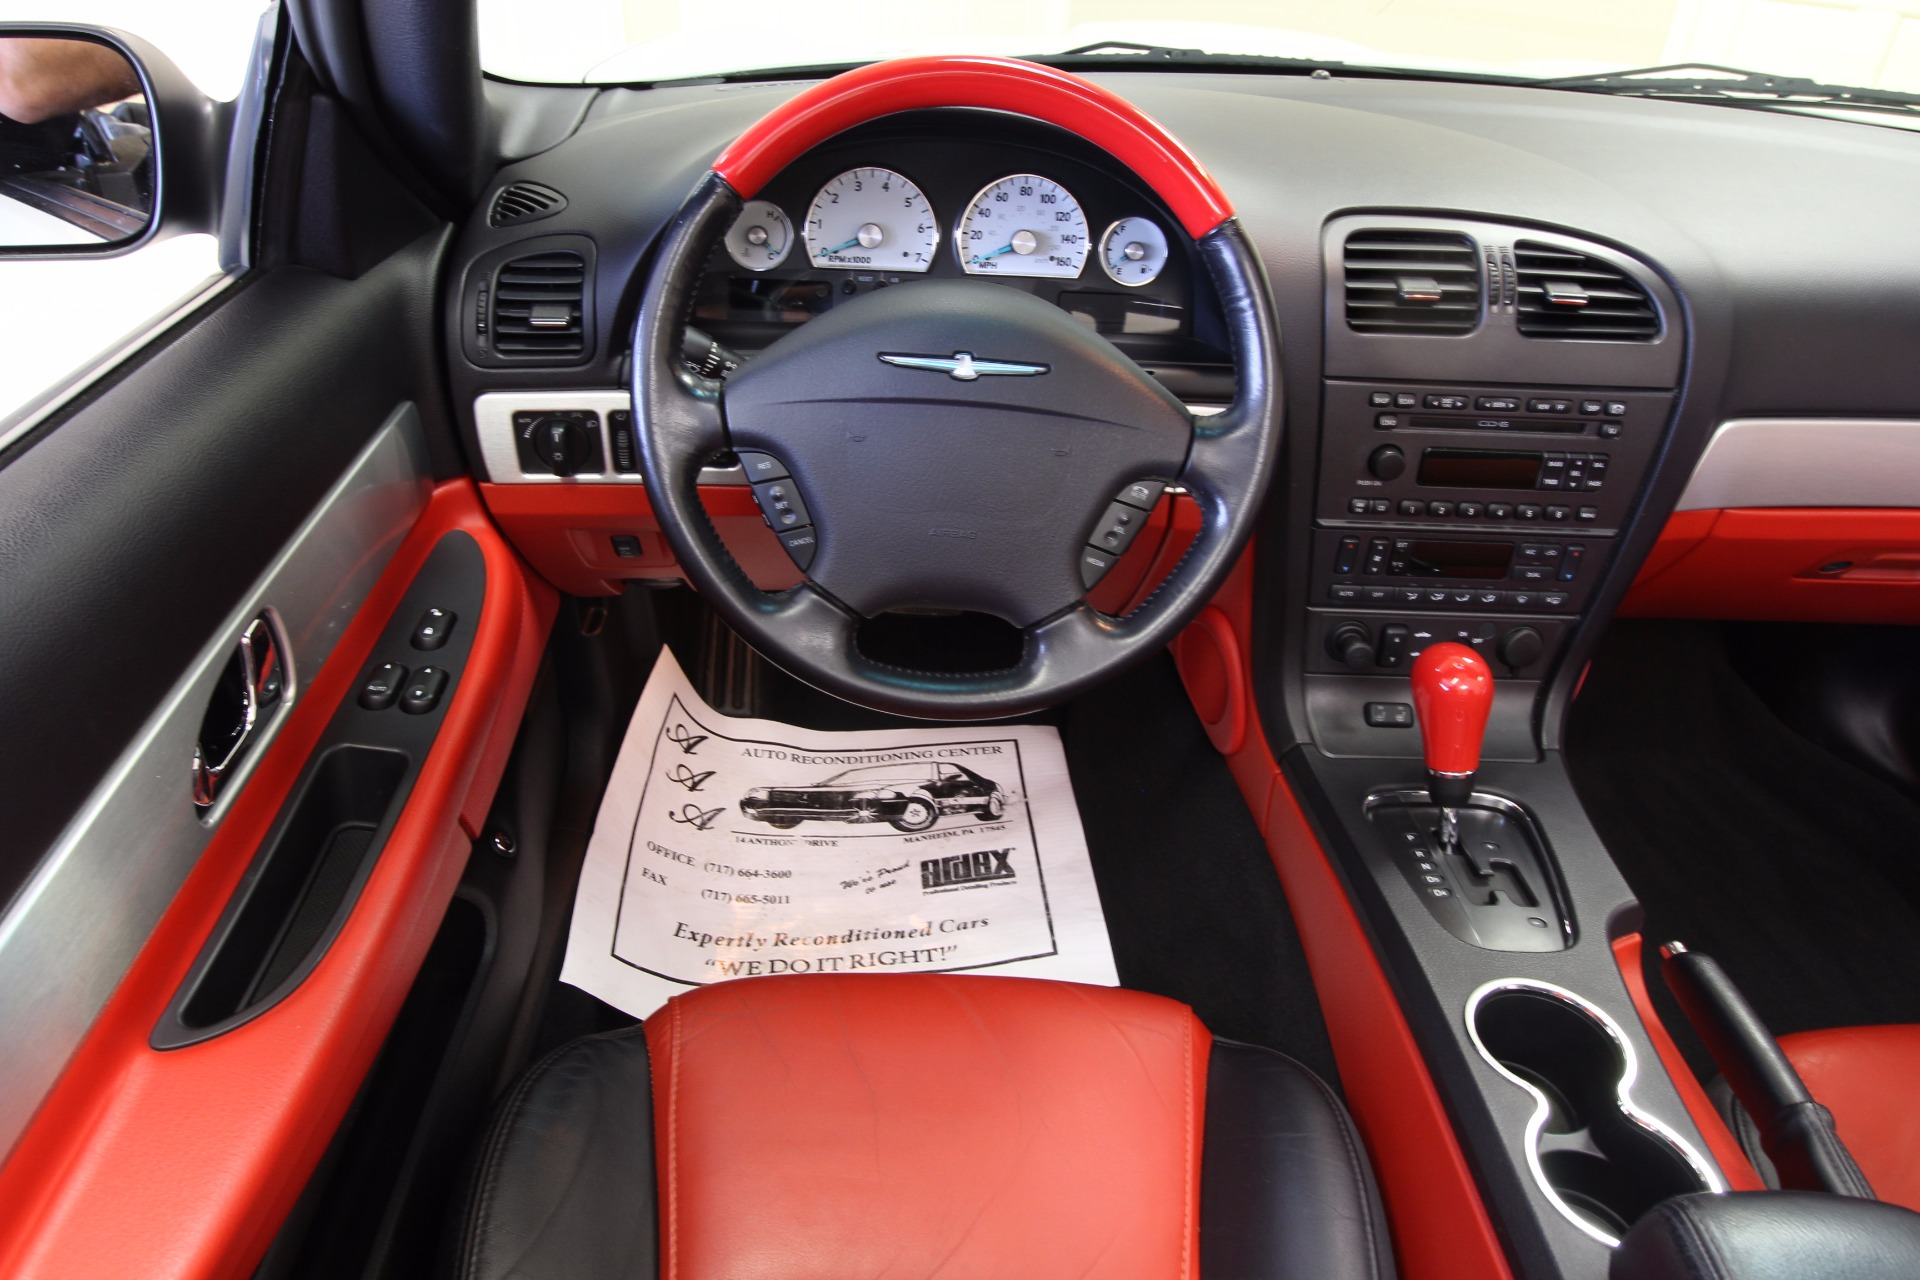 Used 2003 Ford Thunderbird Premium with removable top | Albany, NY